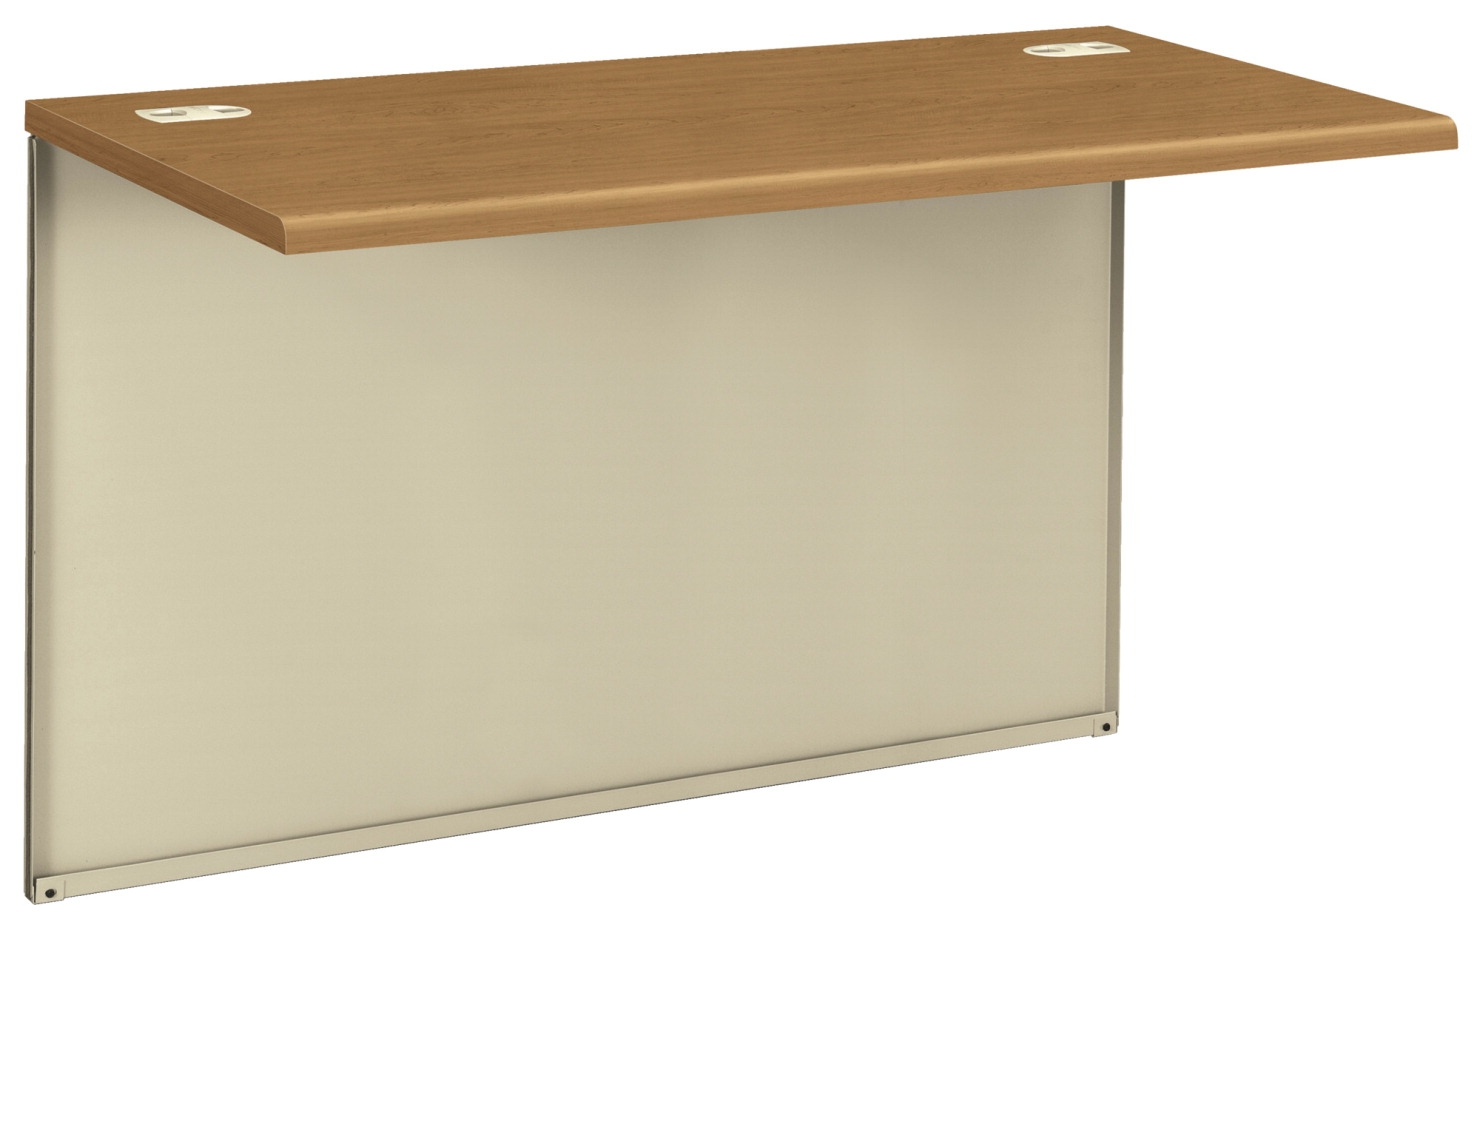 Hon 38000 Series Modular Desk; Bridge; 48 X 24 X 29-1/2 In; Harvest/putty - 1504646 - Tennis Strings Tour Series 1504646